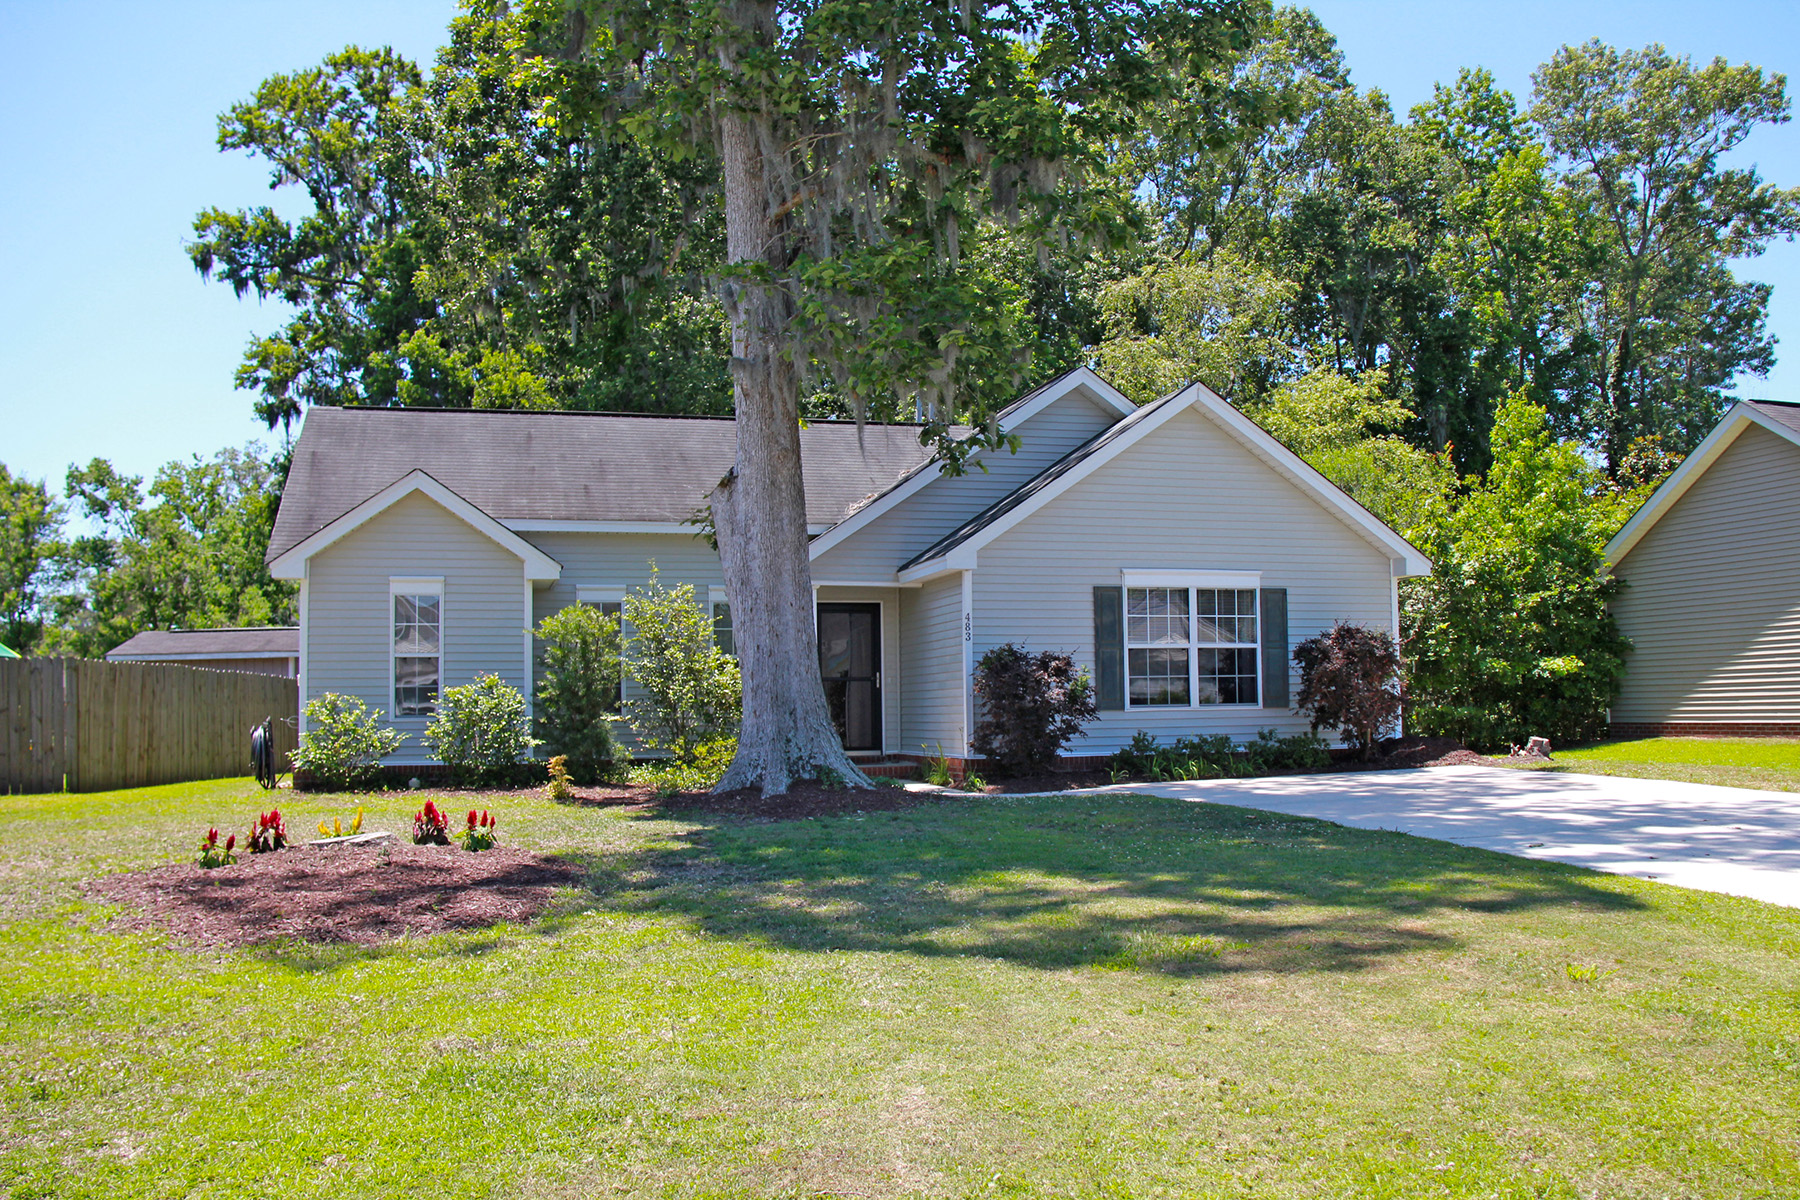 Single Family Home for Sale at 483 Hainsworth Drive Charleston, South Carolina, 29414 United States